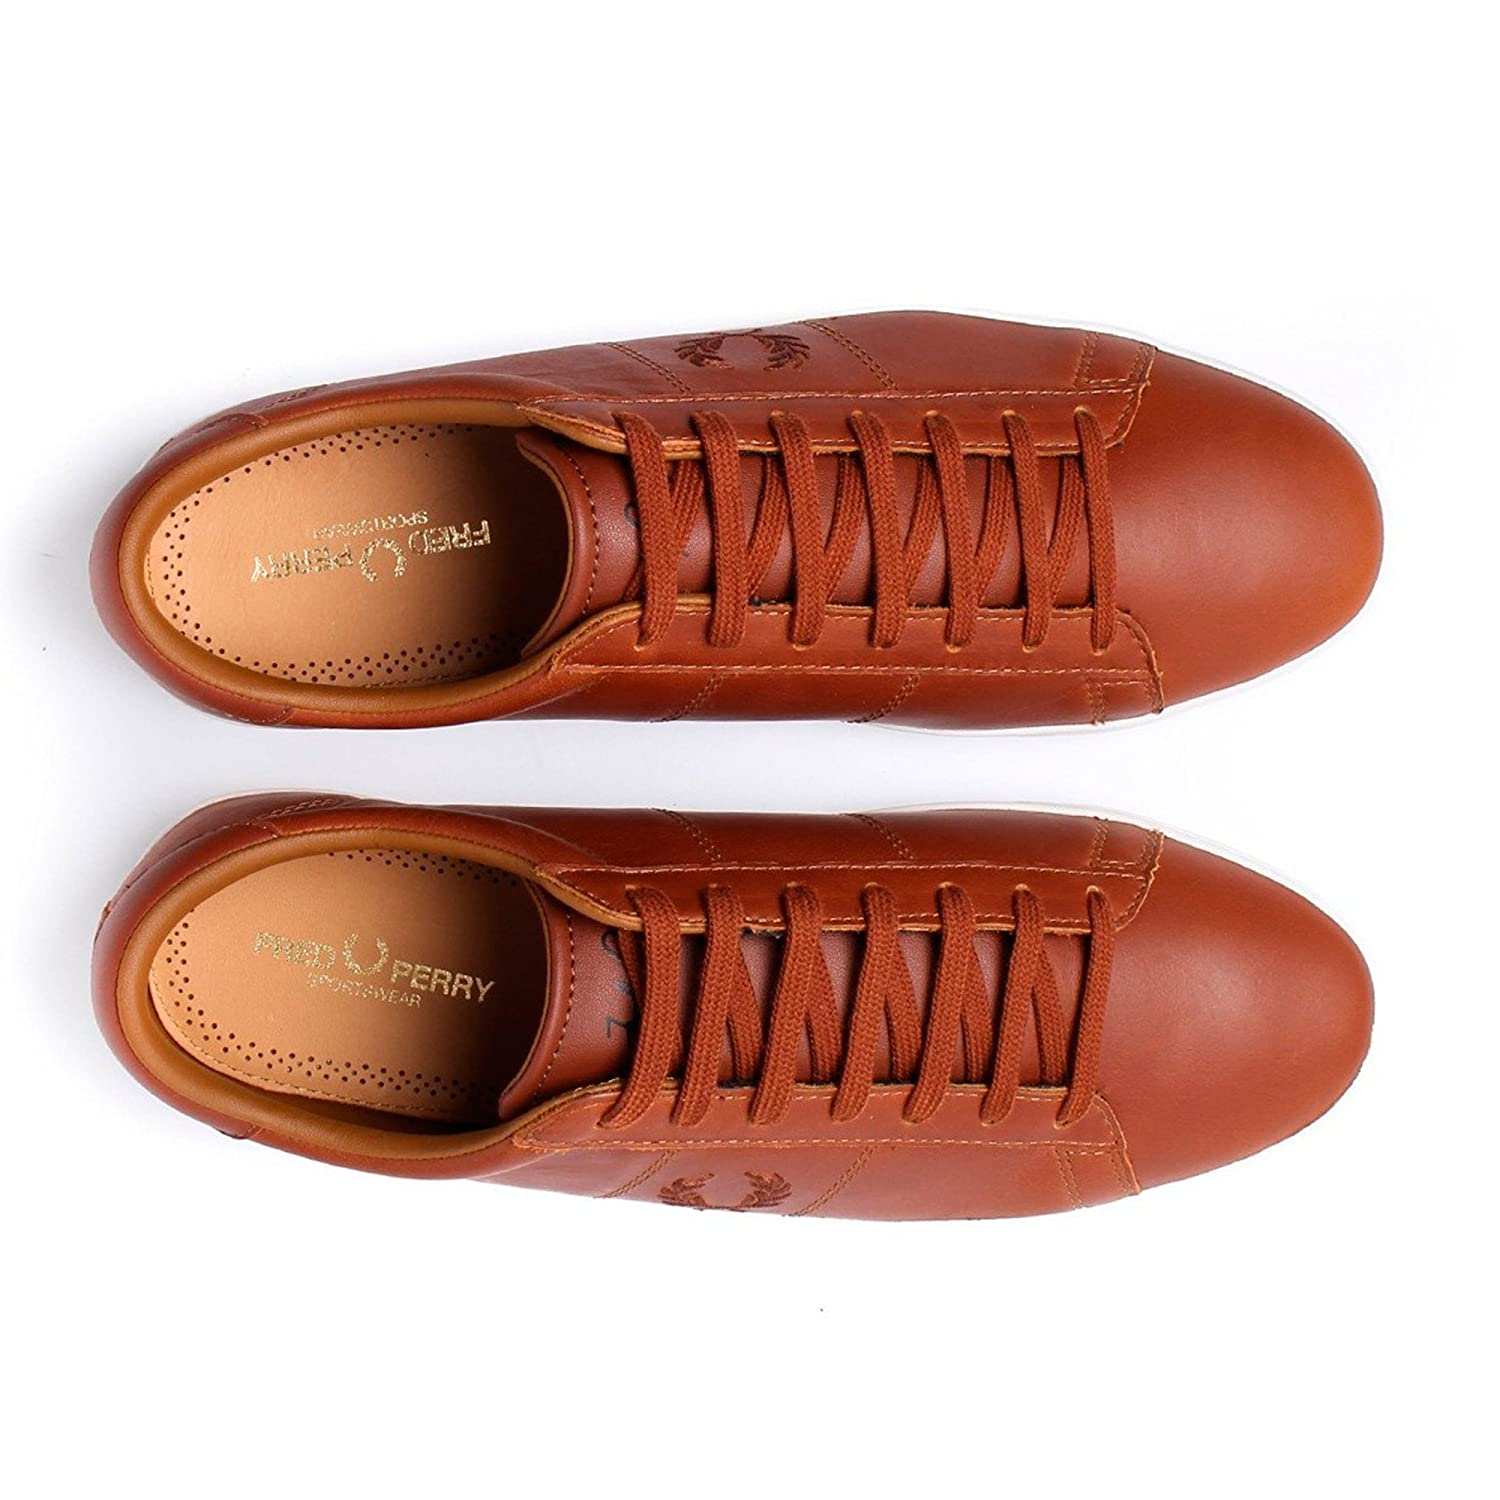 Fred Perry Sneakers for Men Cuir Marron. Spencer Leather Tan. Sneaker (45 EU,  Leather Tan)  Amazon.fr  Chaussures et Sacs 96783d8cbf12